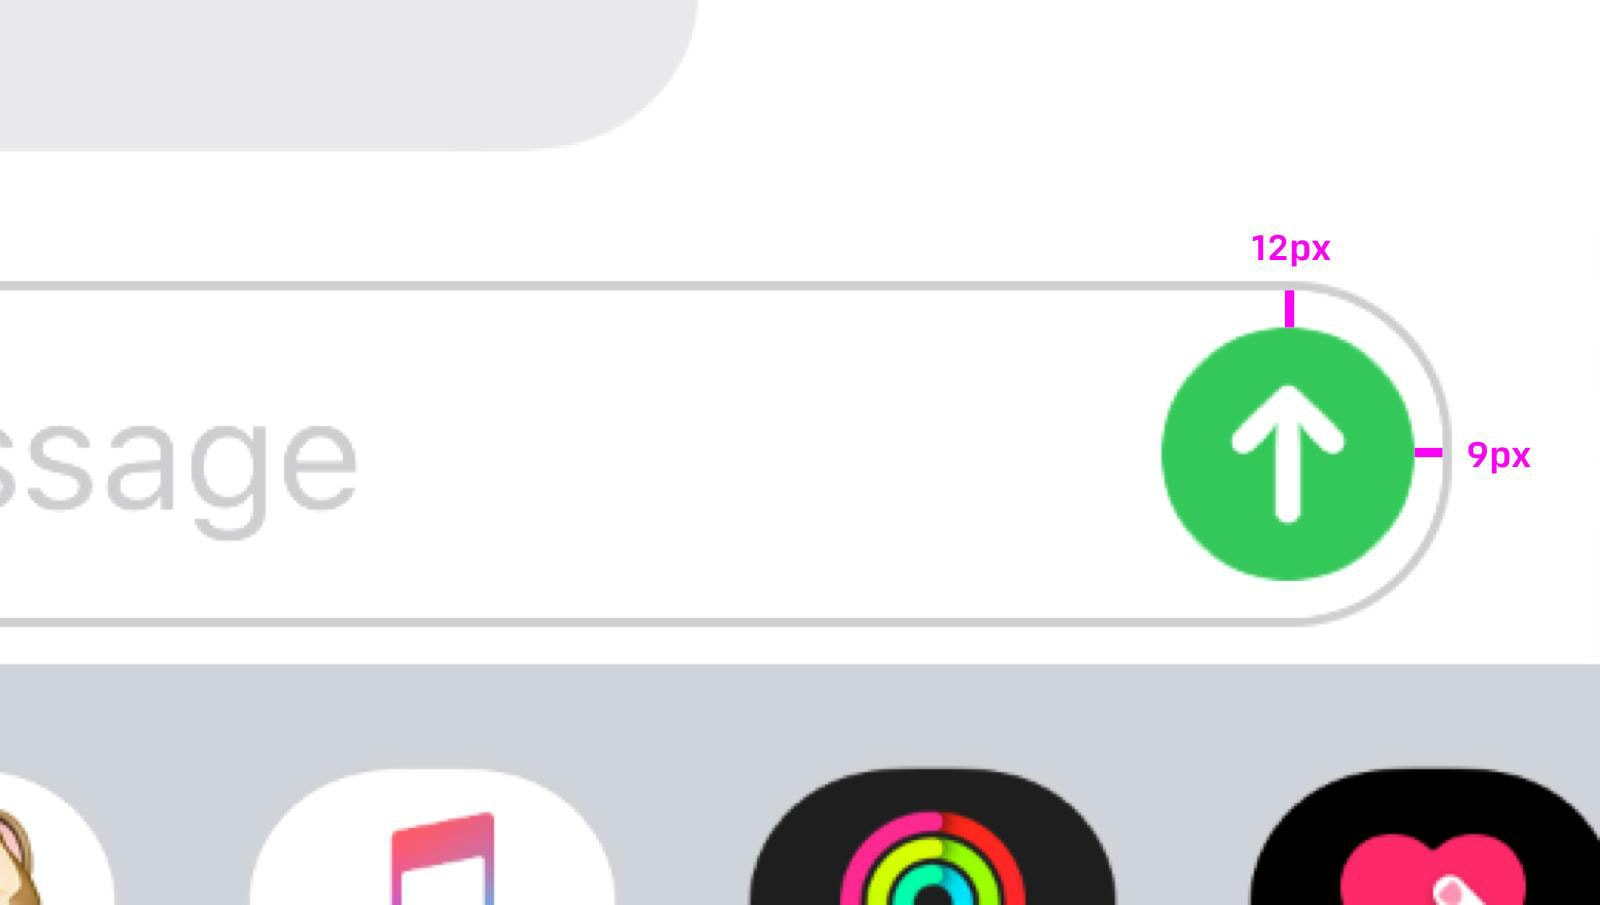 the send key on messaging is off by a few pixels